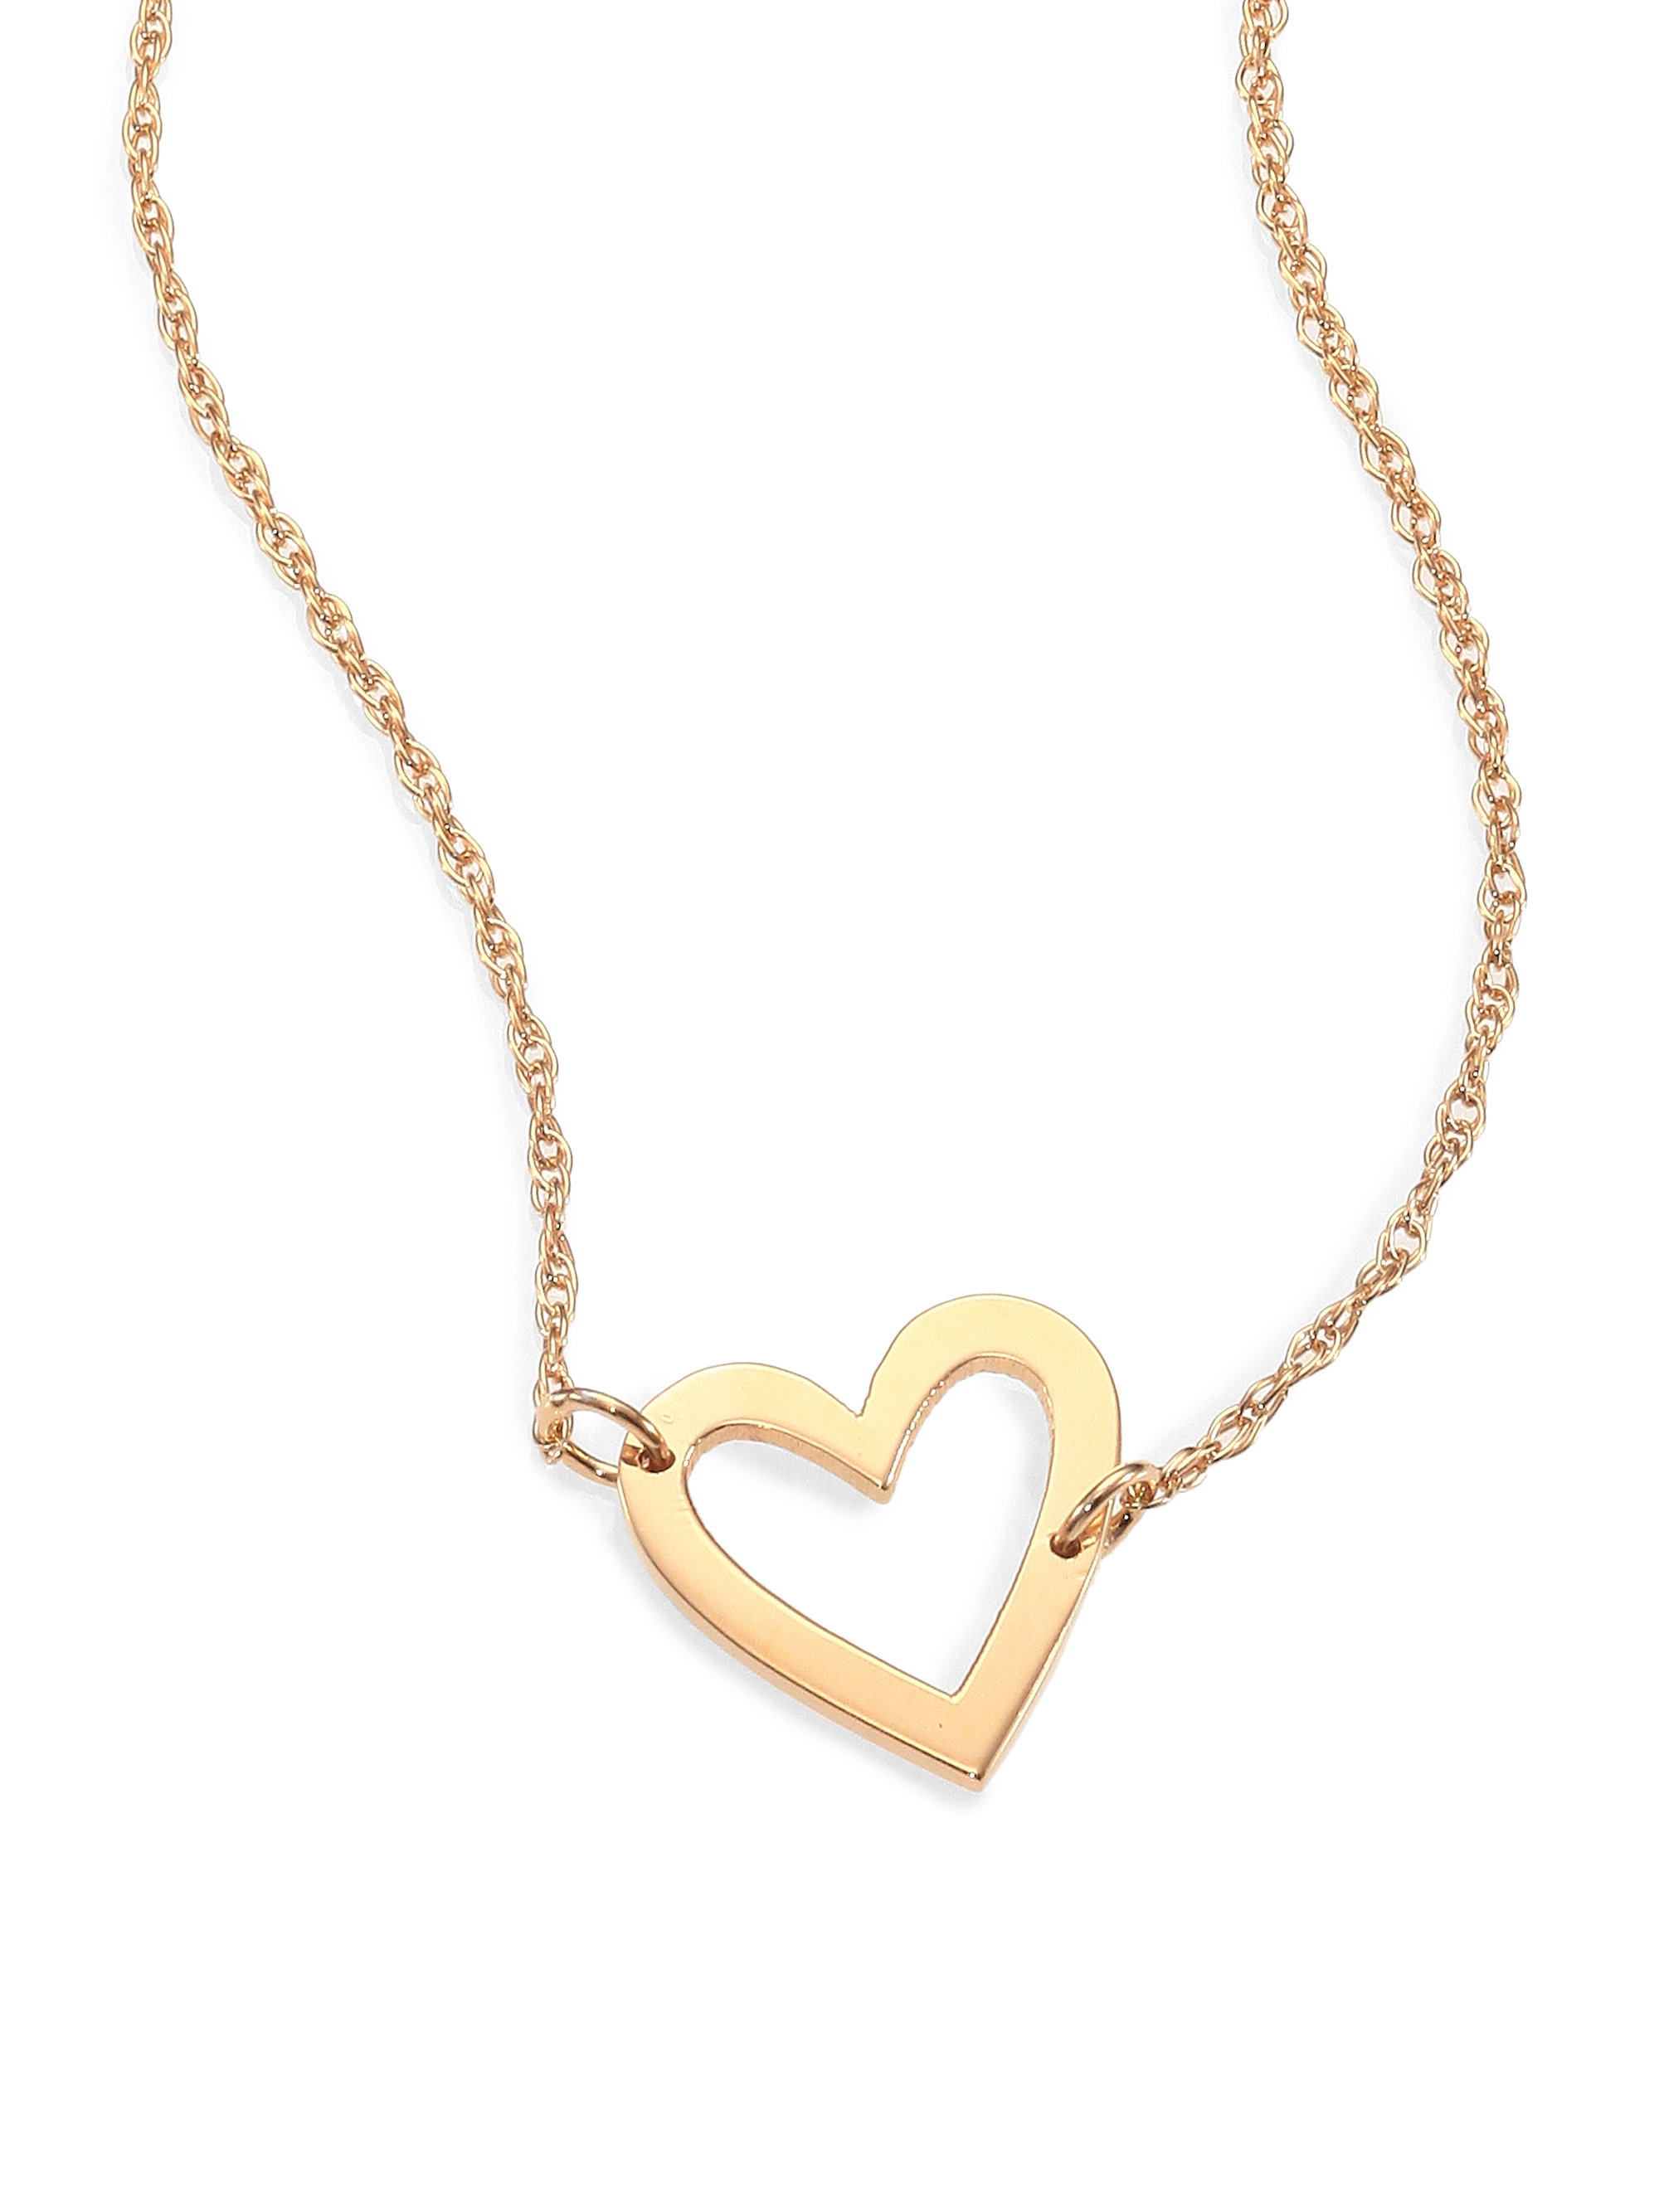 us best claire pendant s necklace heart and open necklaces gold silver friends